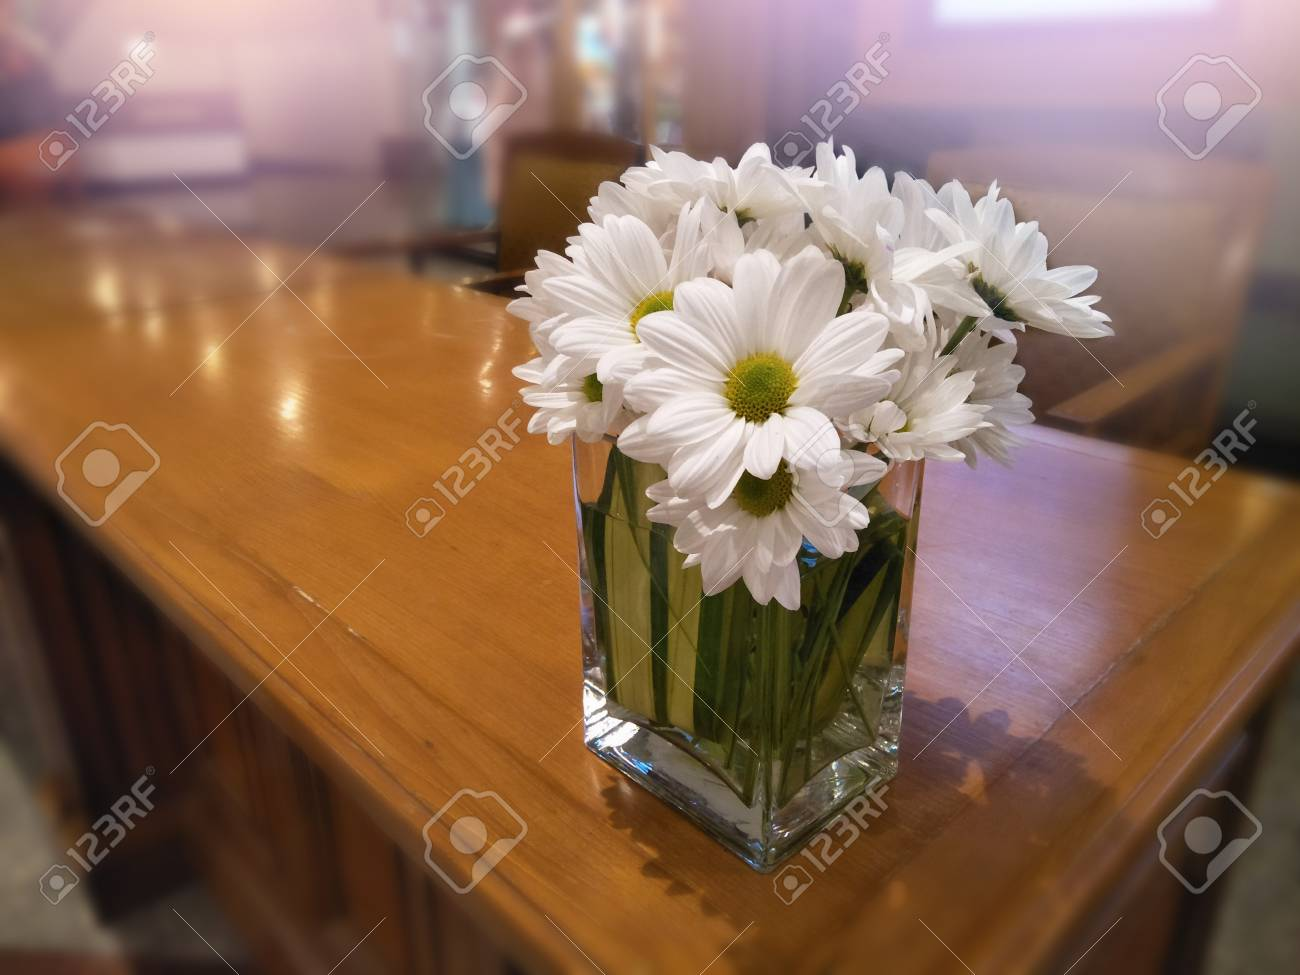 Close up daisy bouquet in vase on table for decorative room and close up daisy bouquet in vase on table for decorative room and interiorwhite flower mightylinksfo